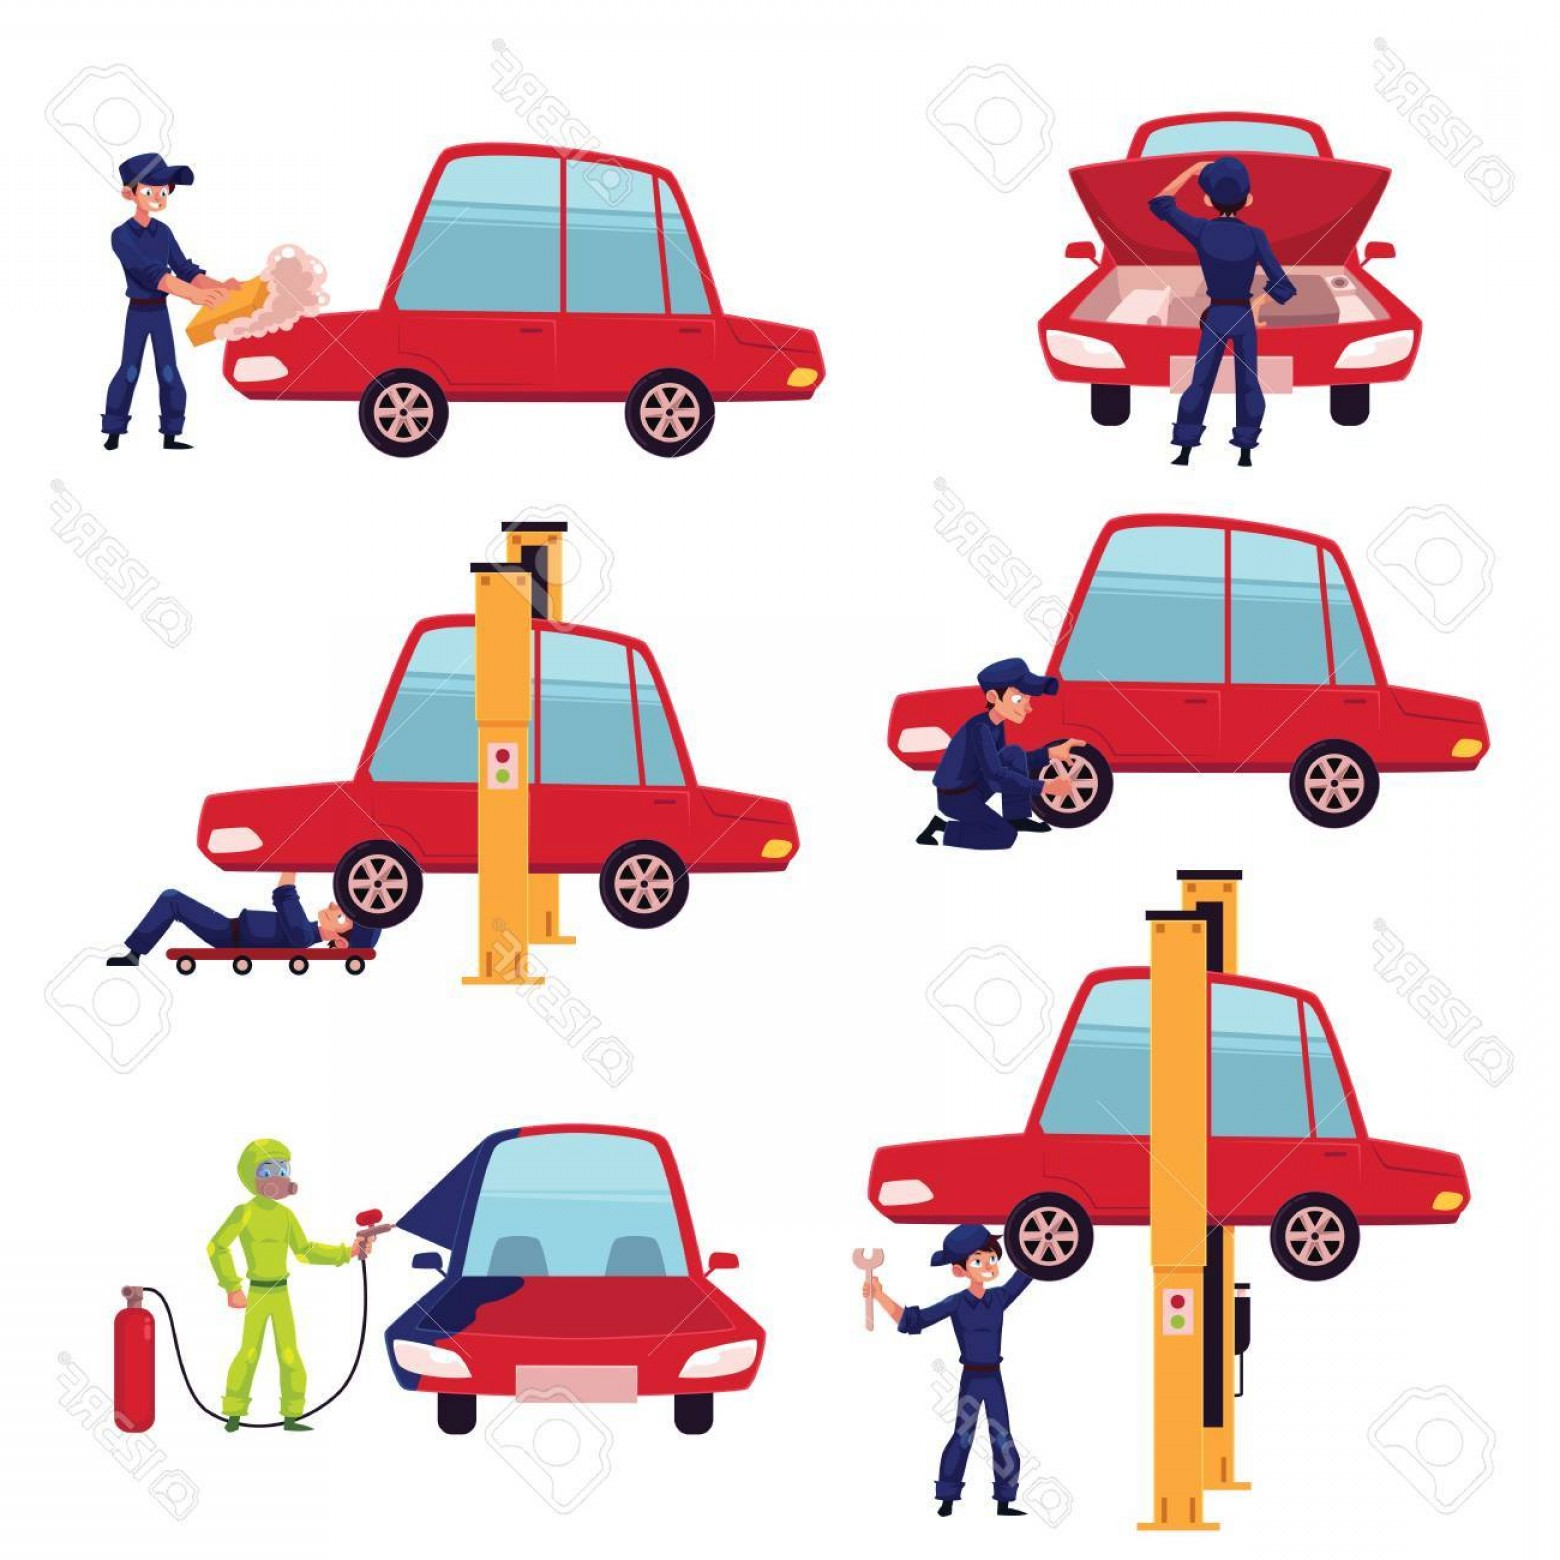 Fixing Car Vector: Photostock Vector Set Of Auto Mechanic Car Service Worker Technician Fixing A Car Cartoon Vector Illustration Isolated